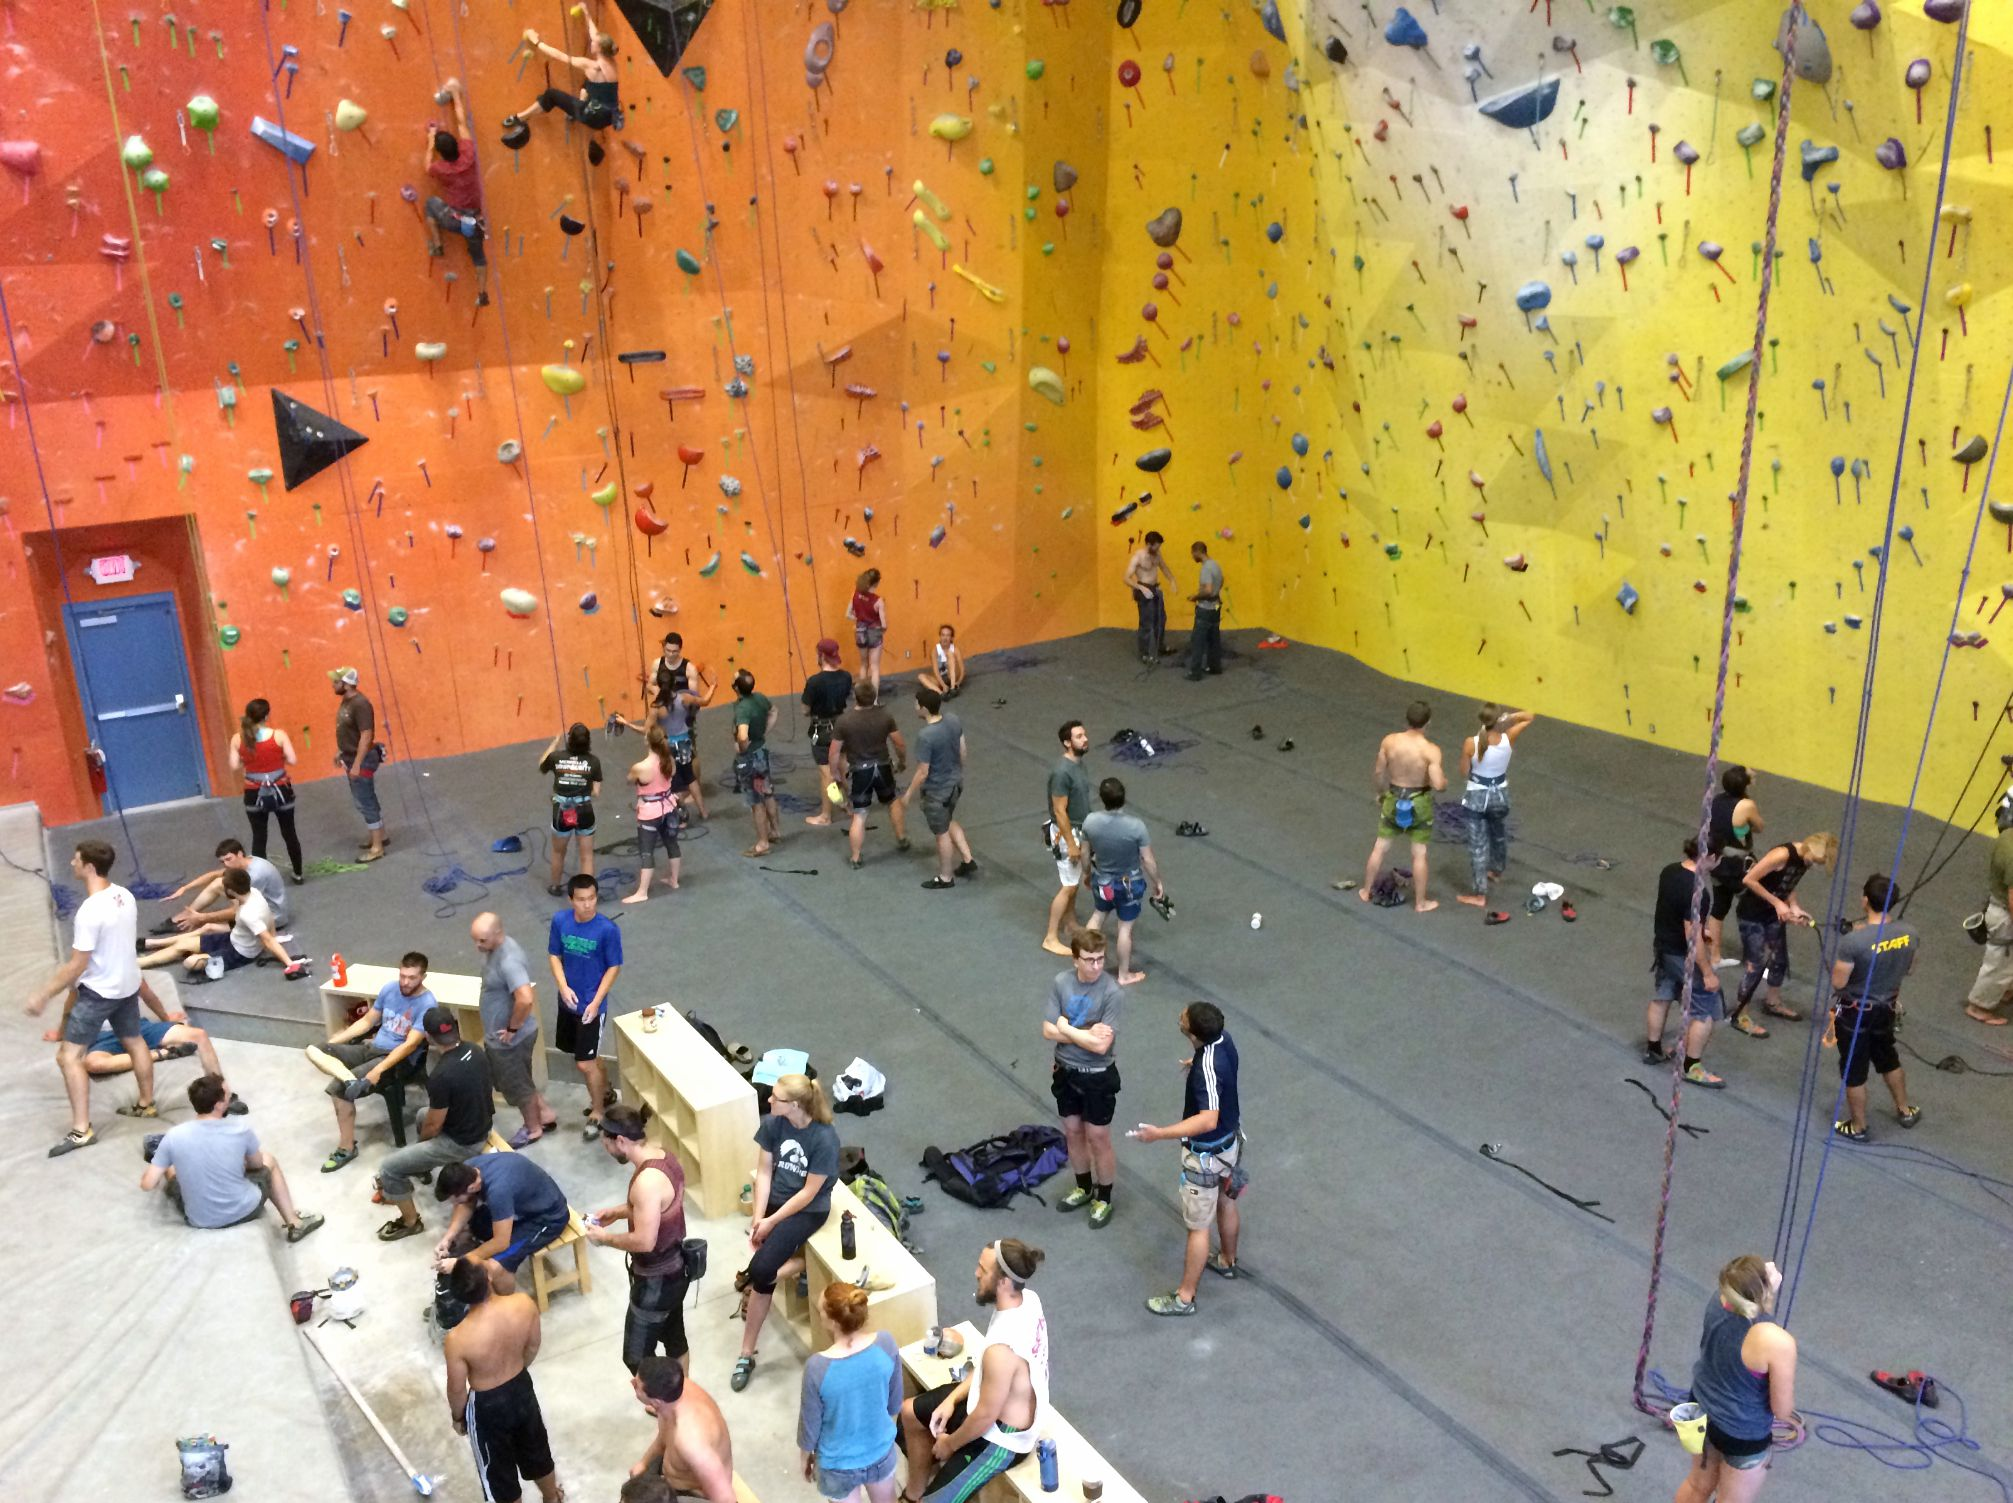 planet rock - rock climbing training center michigan